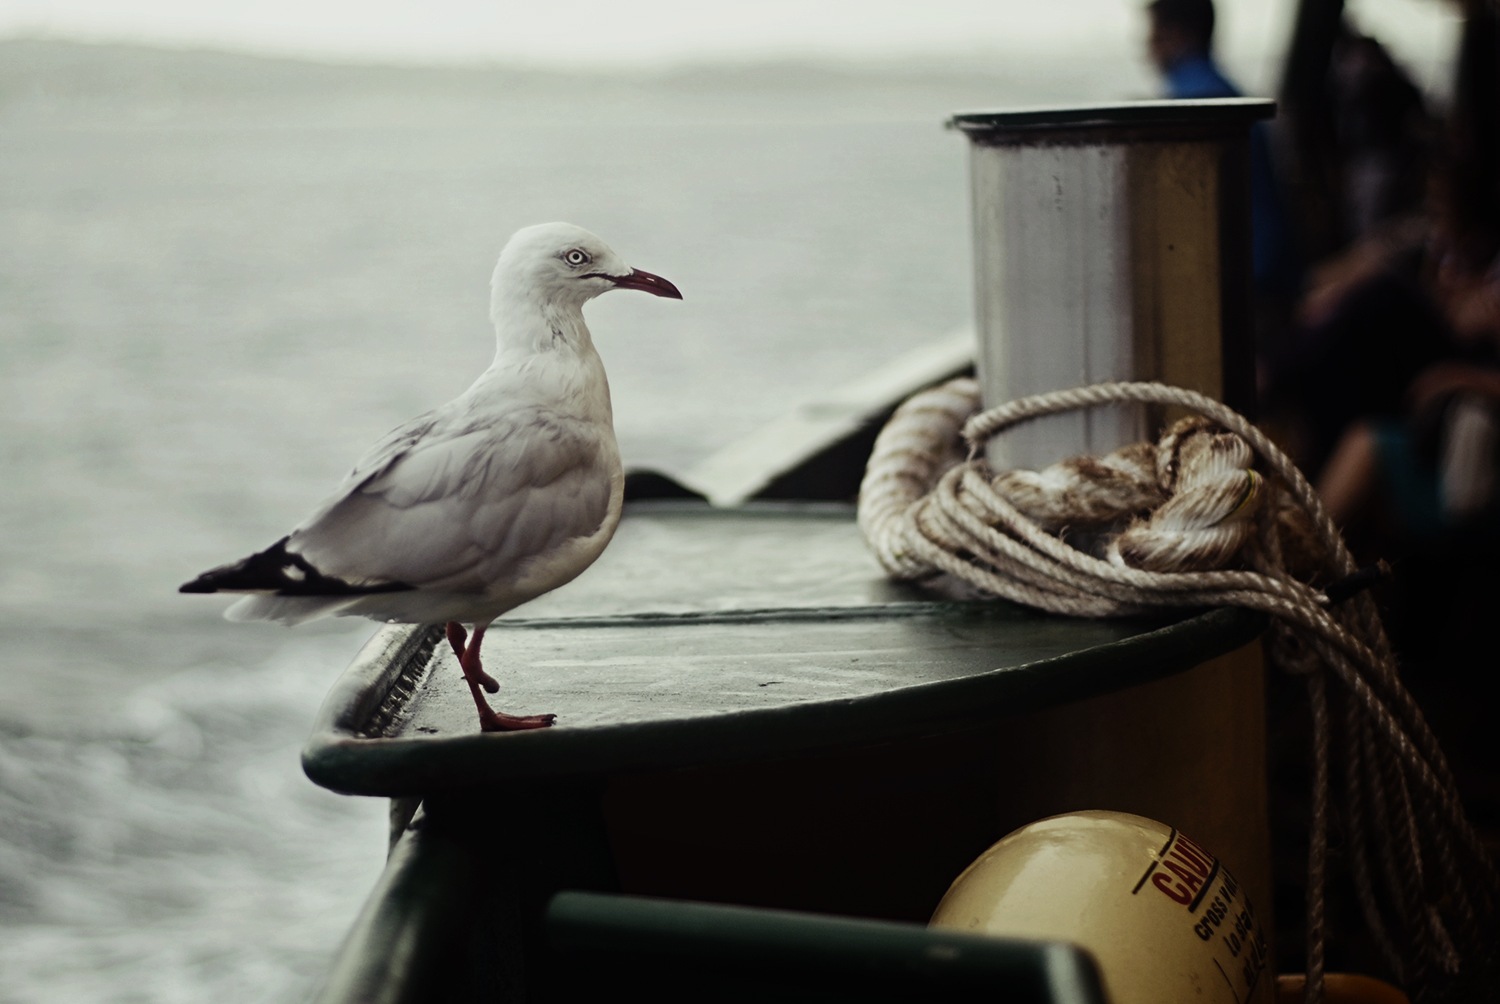 'stumpy' the seagull who hitched a ride with us